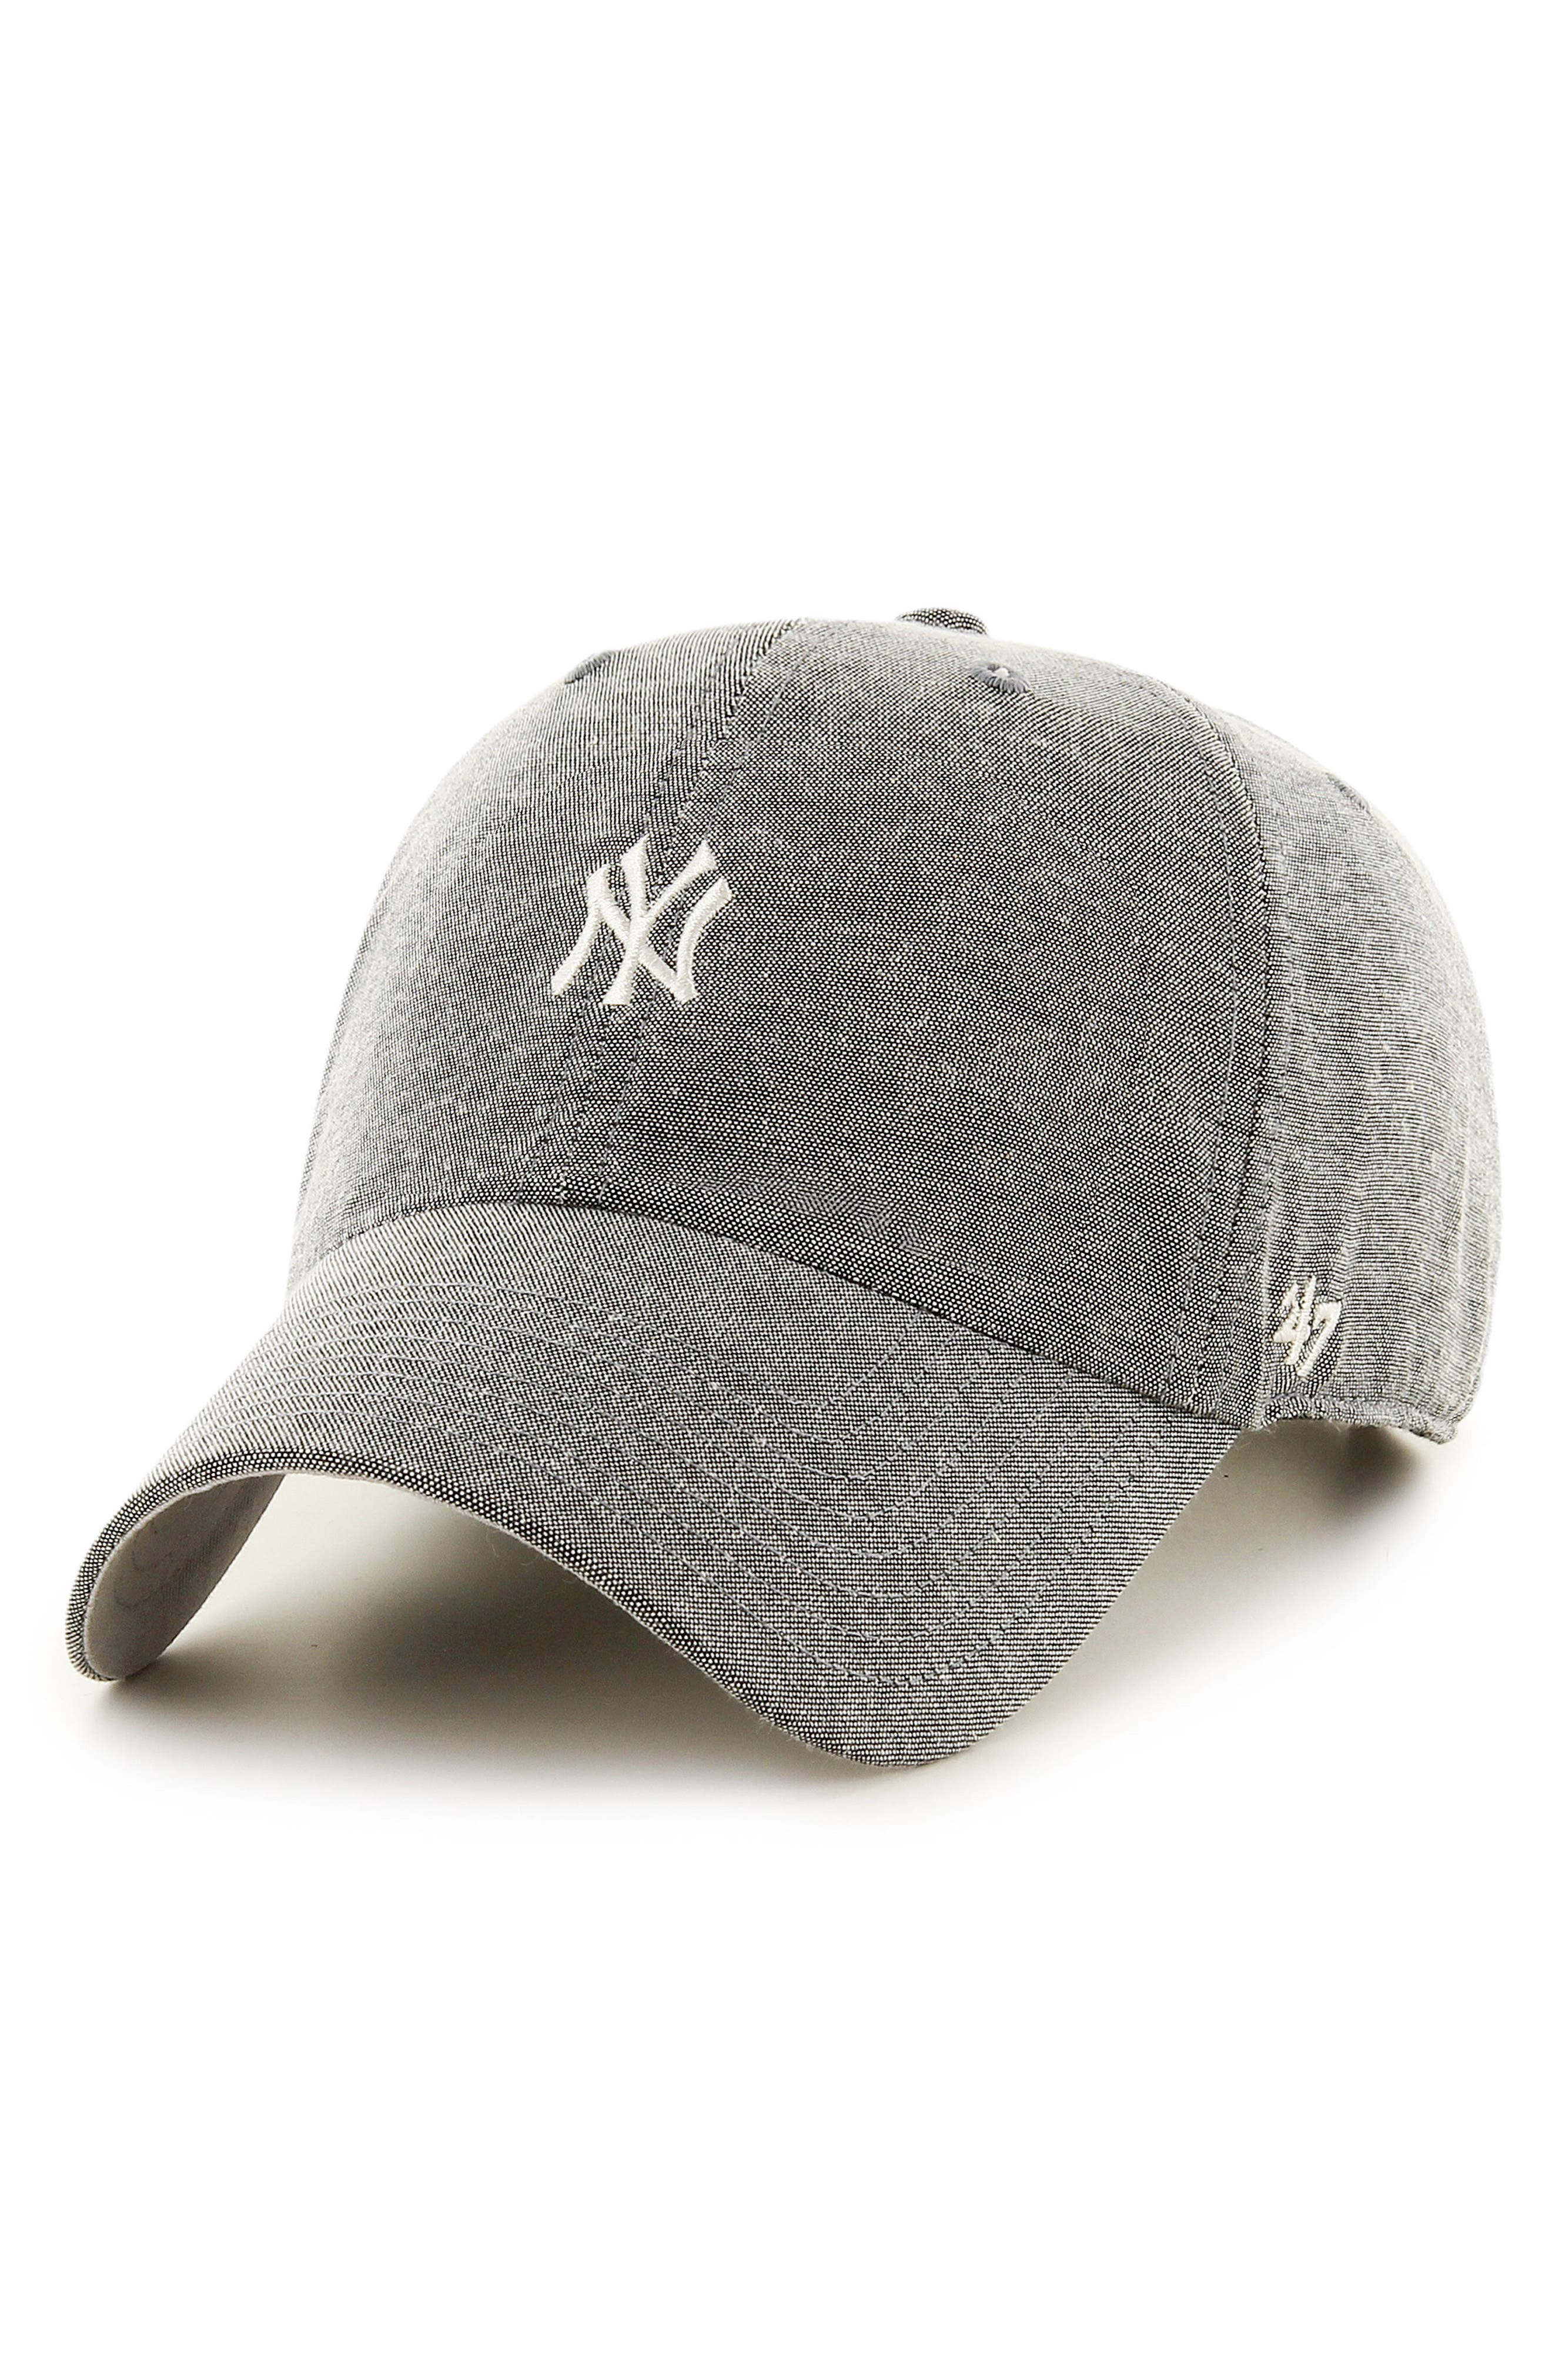 Monument Salute Clean Up NY Yankees Baseball Cap,                         Main,                         color,